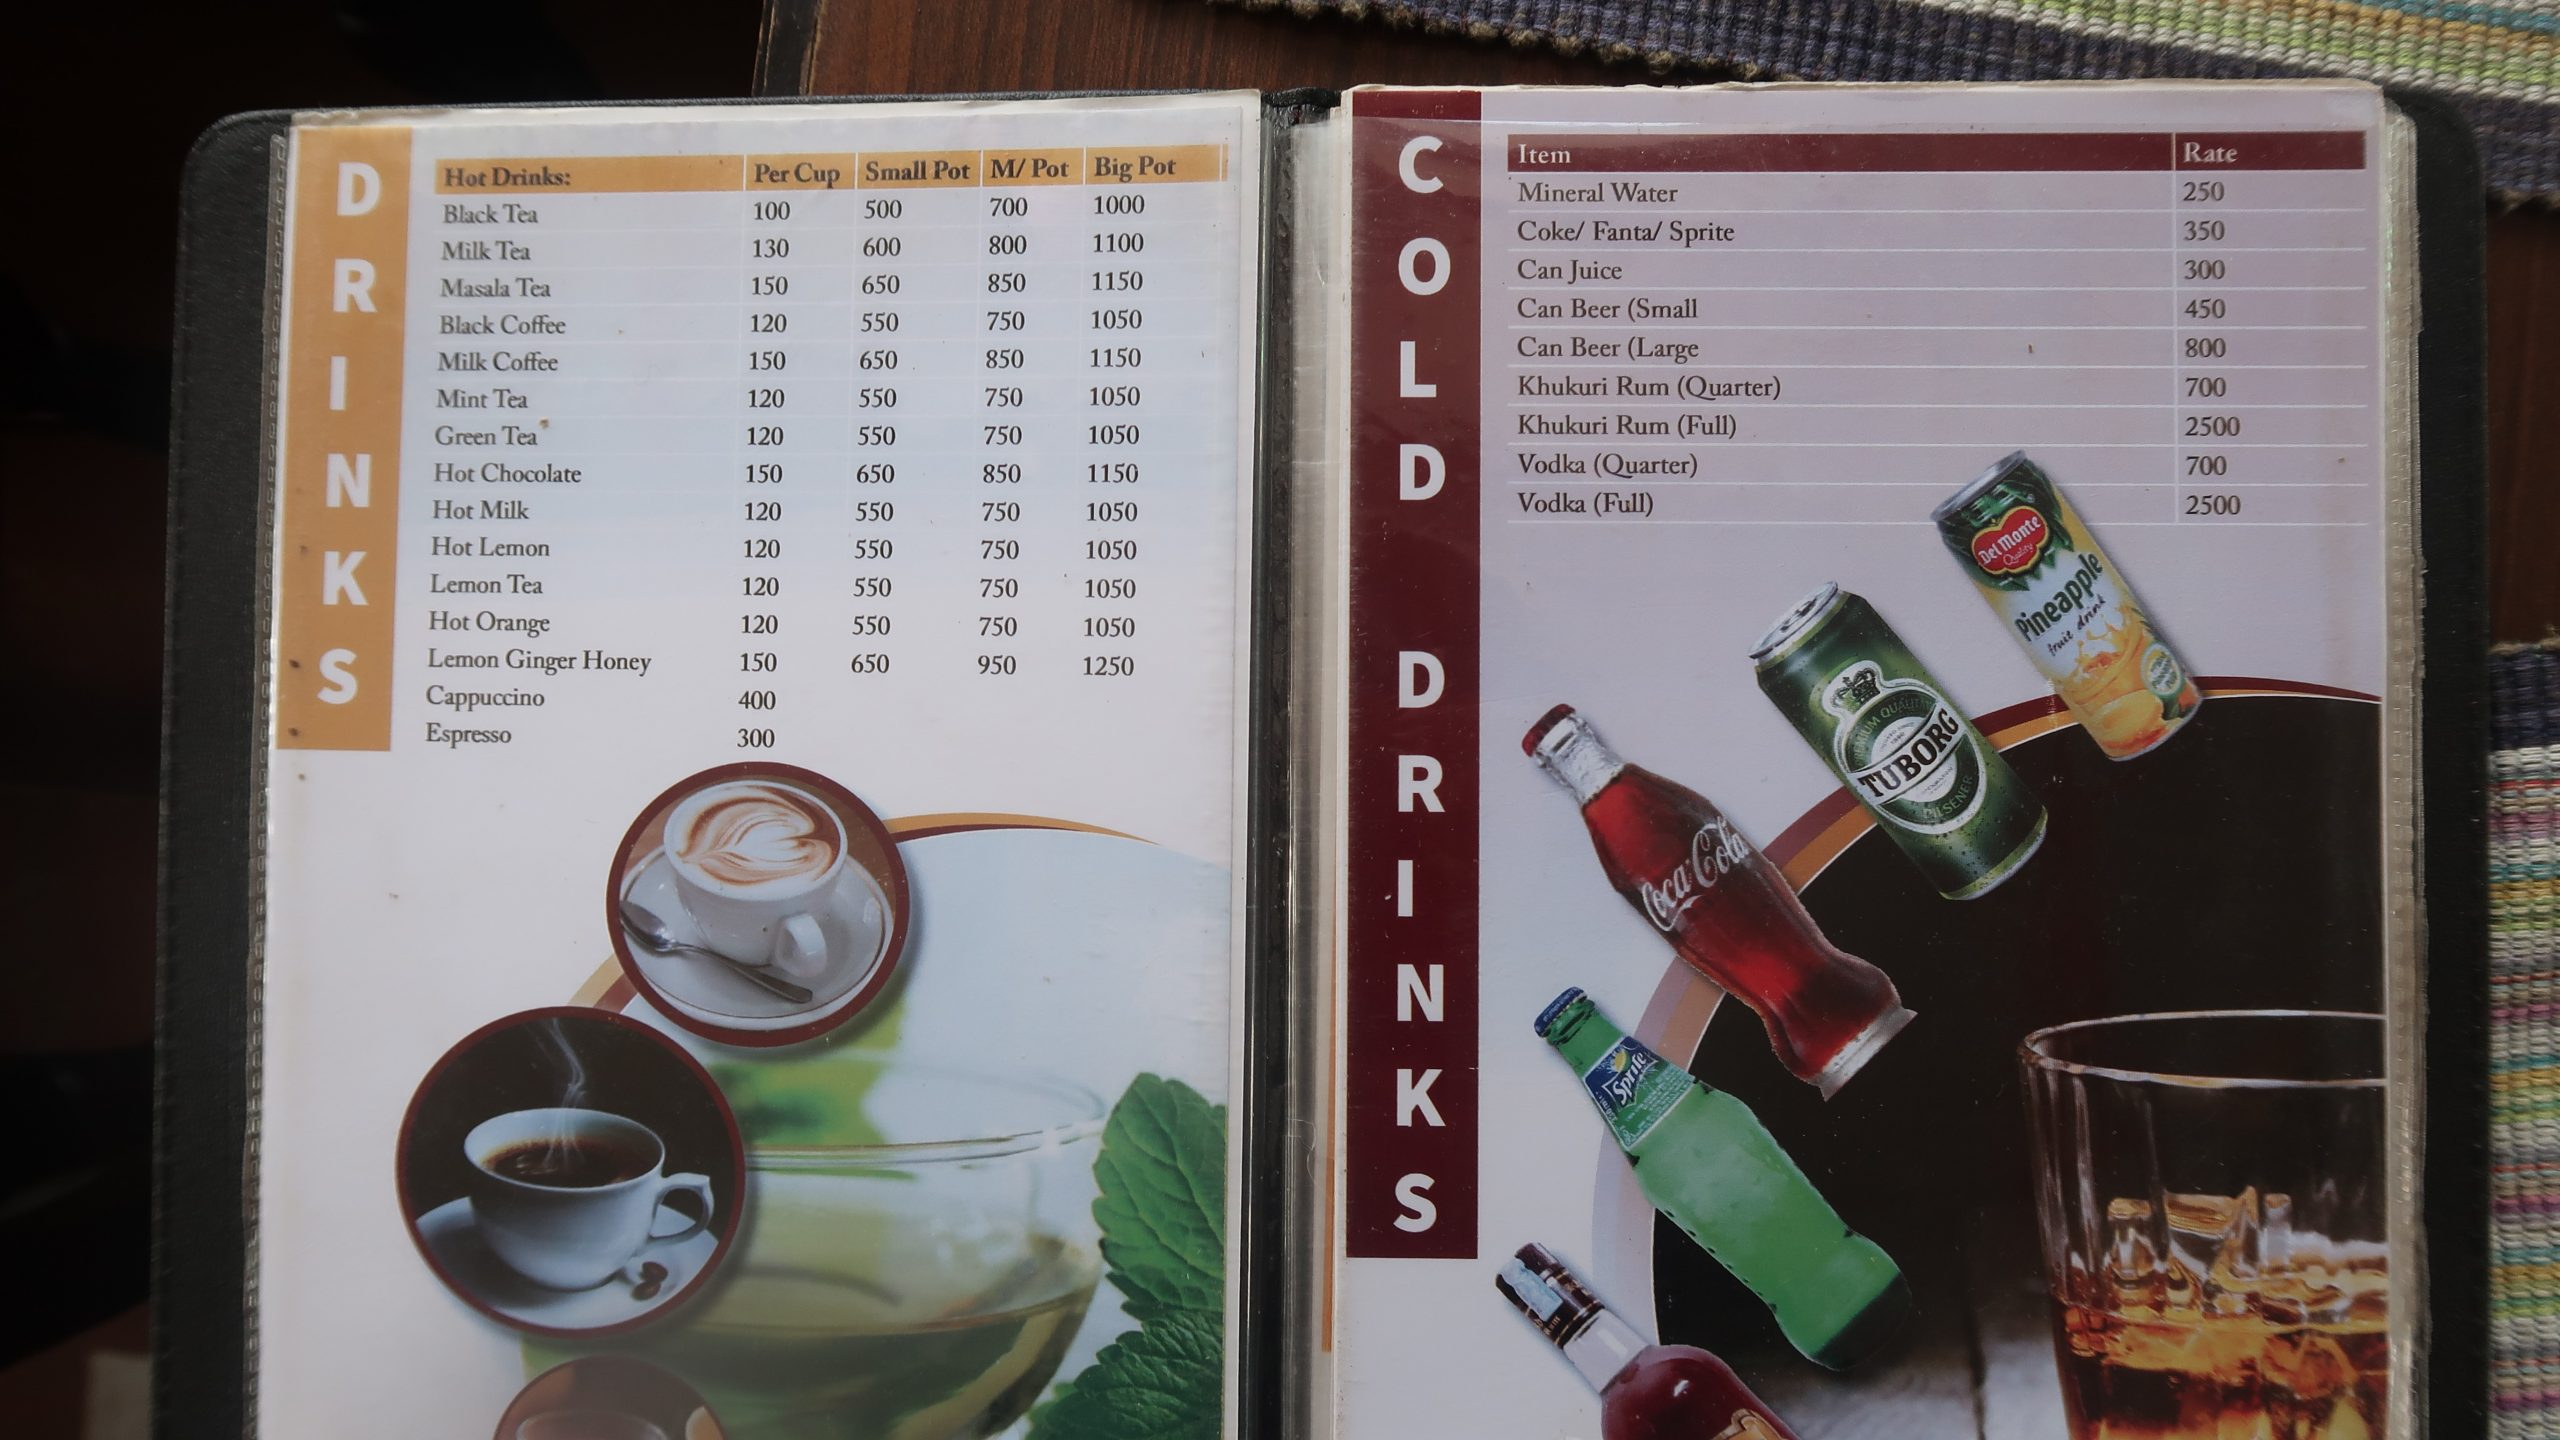 Sample Beverage menu for reference